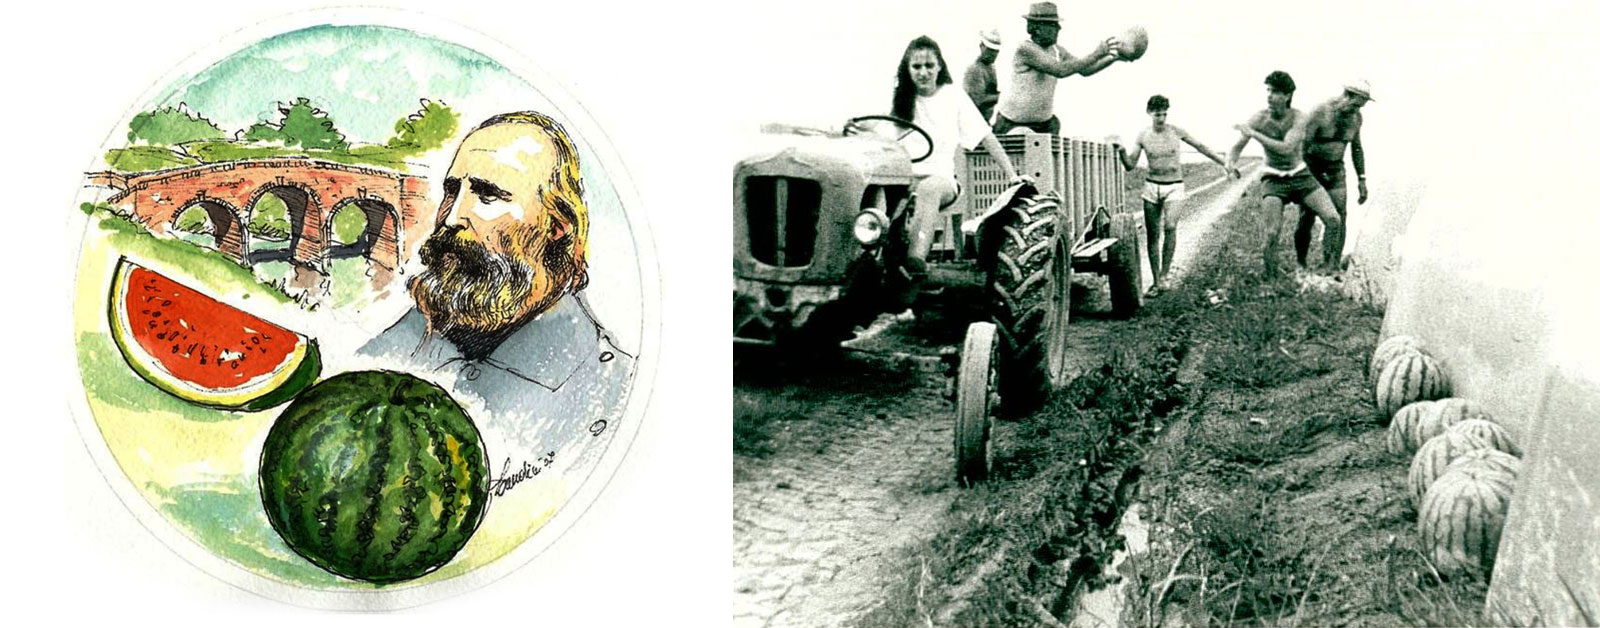 Historical photos. Garibaldi with Watermelon - Family of growers who collect watermelons in the 70's